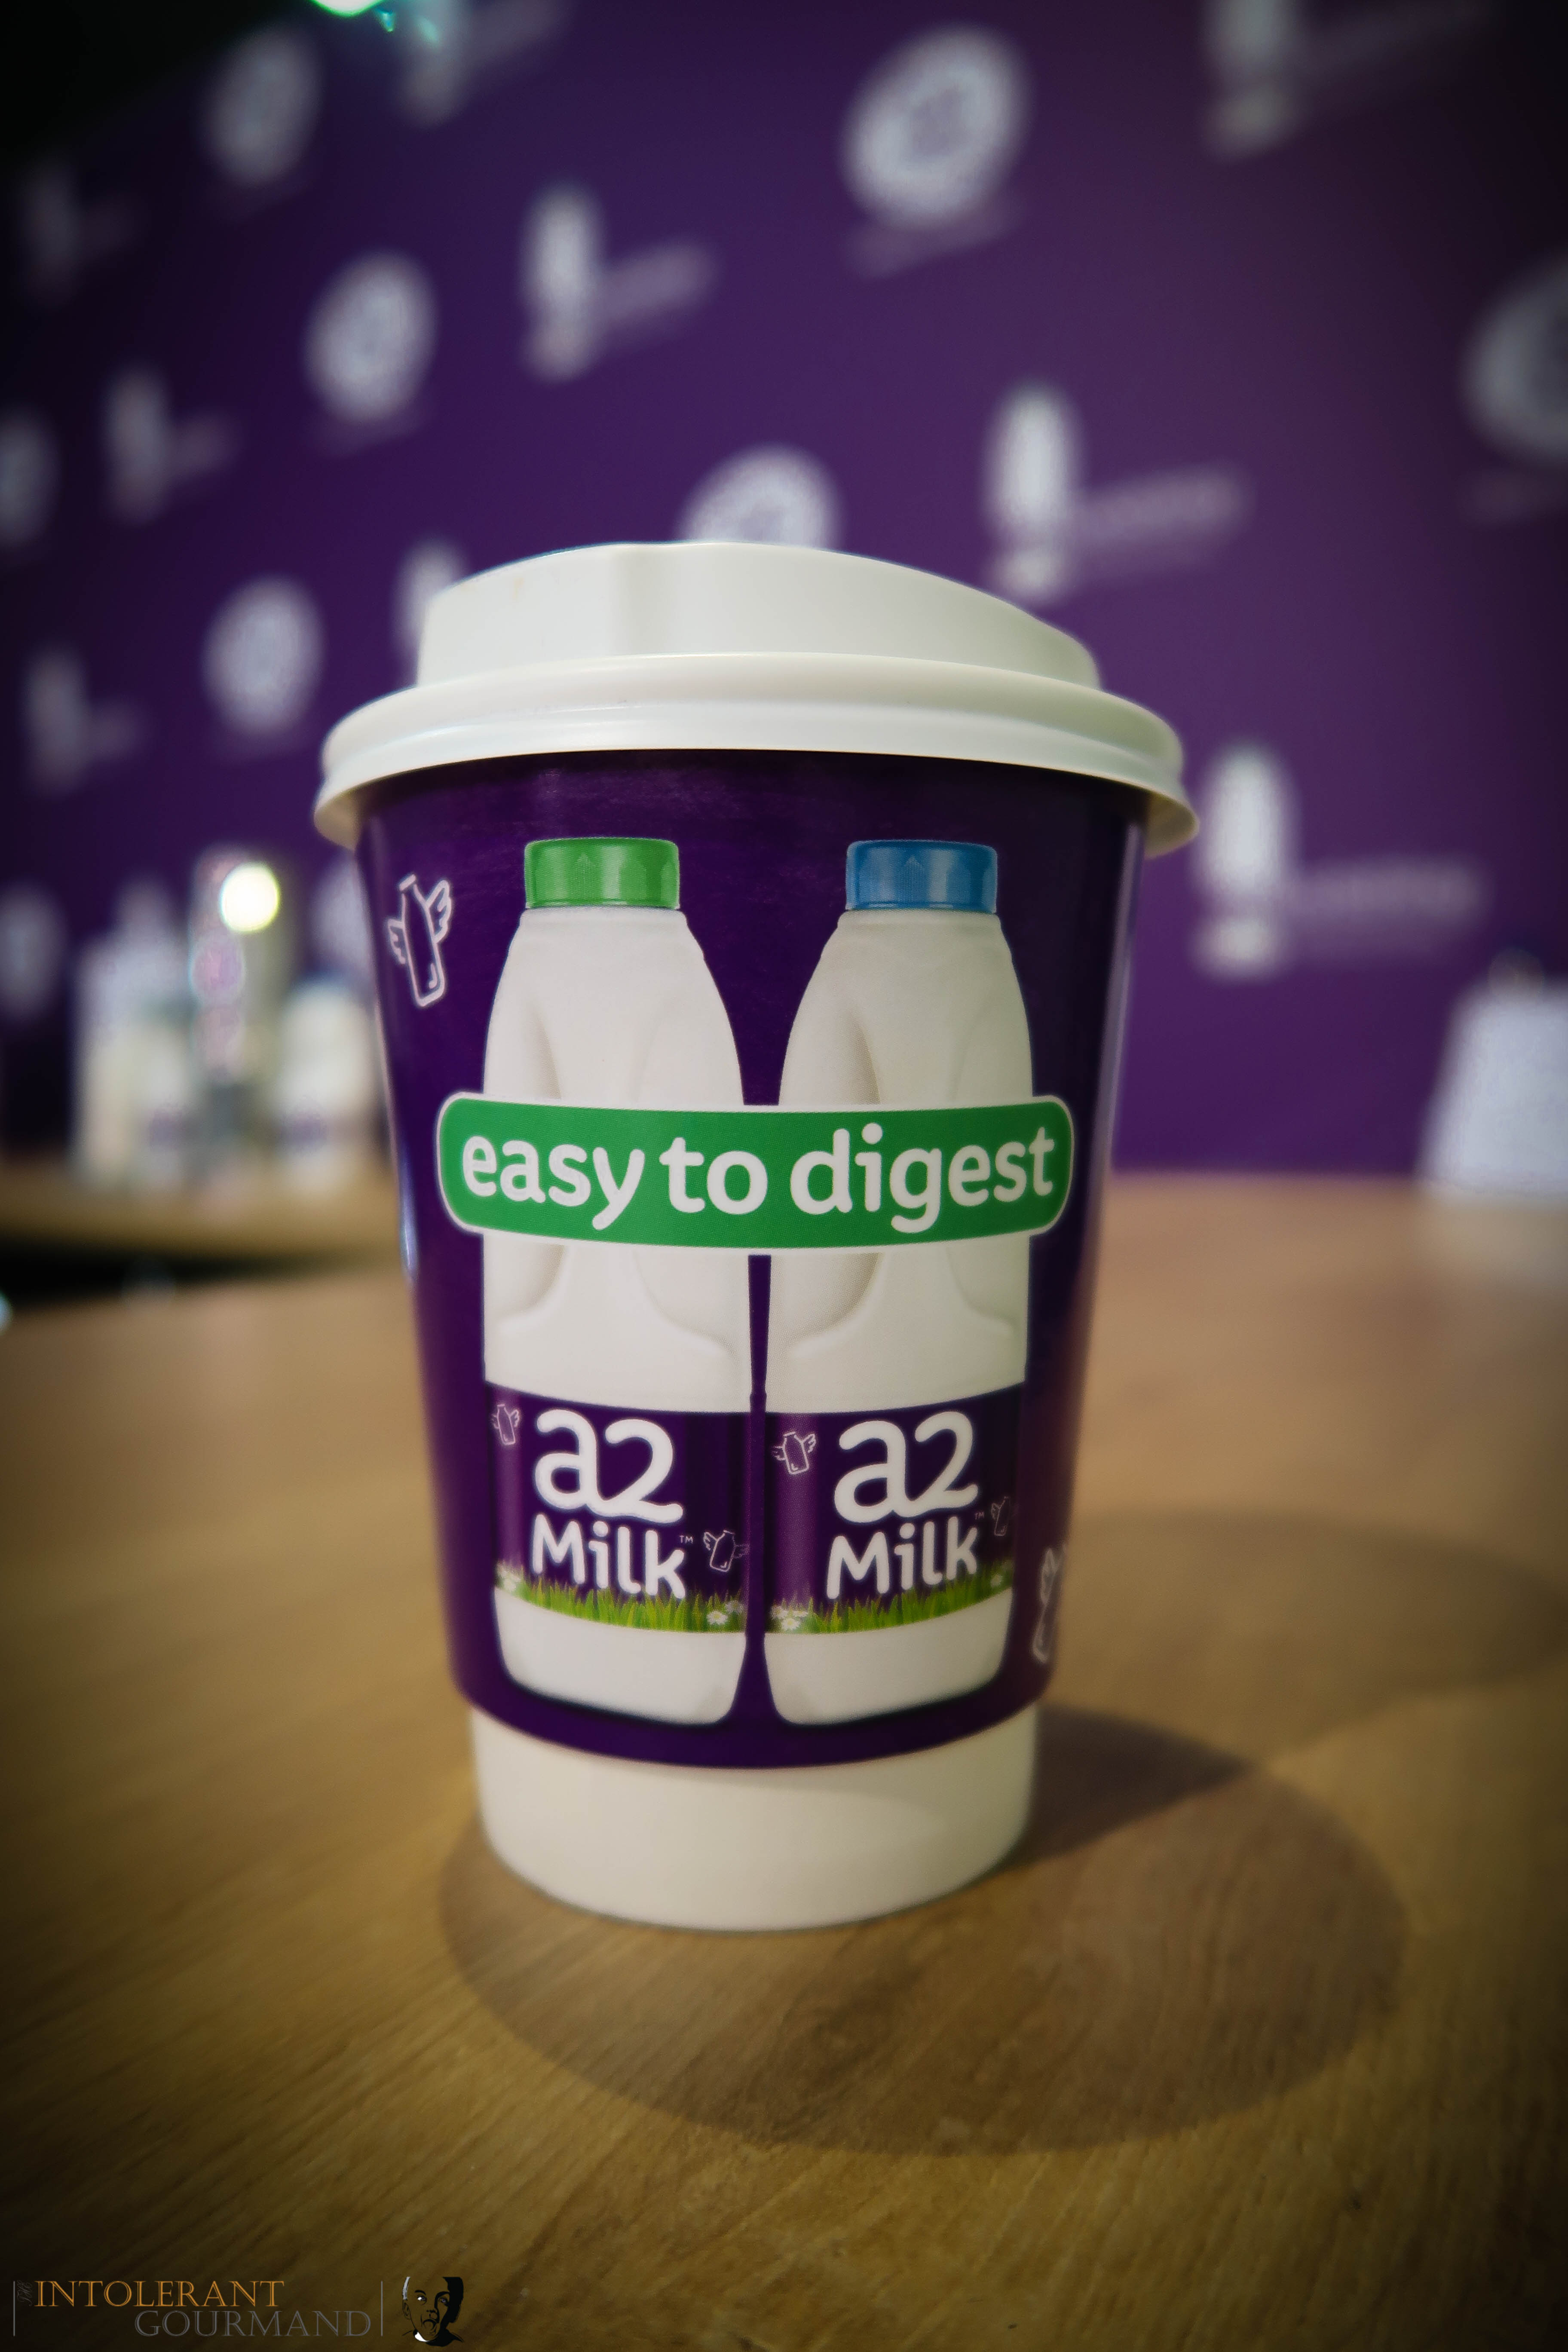 Allergy Show London 2017 - the Free From Cafe at the Allergy Show was sponsored by a2 Milk! This was a delicious latte made with a2 Milk! www.intolerantgourmand.com